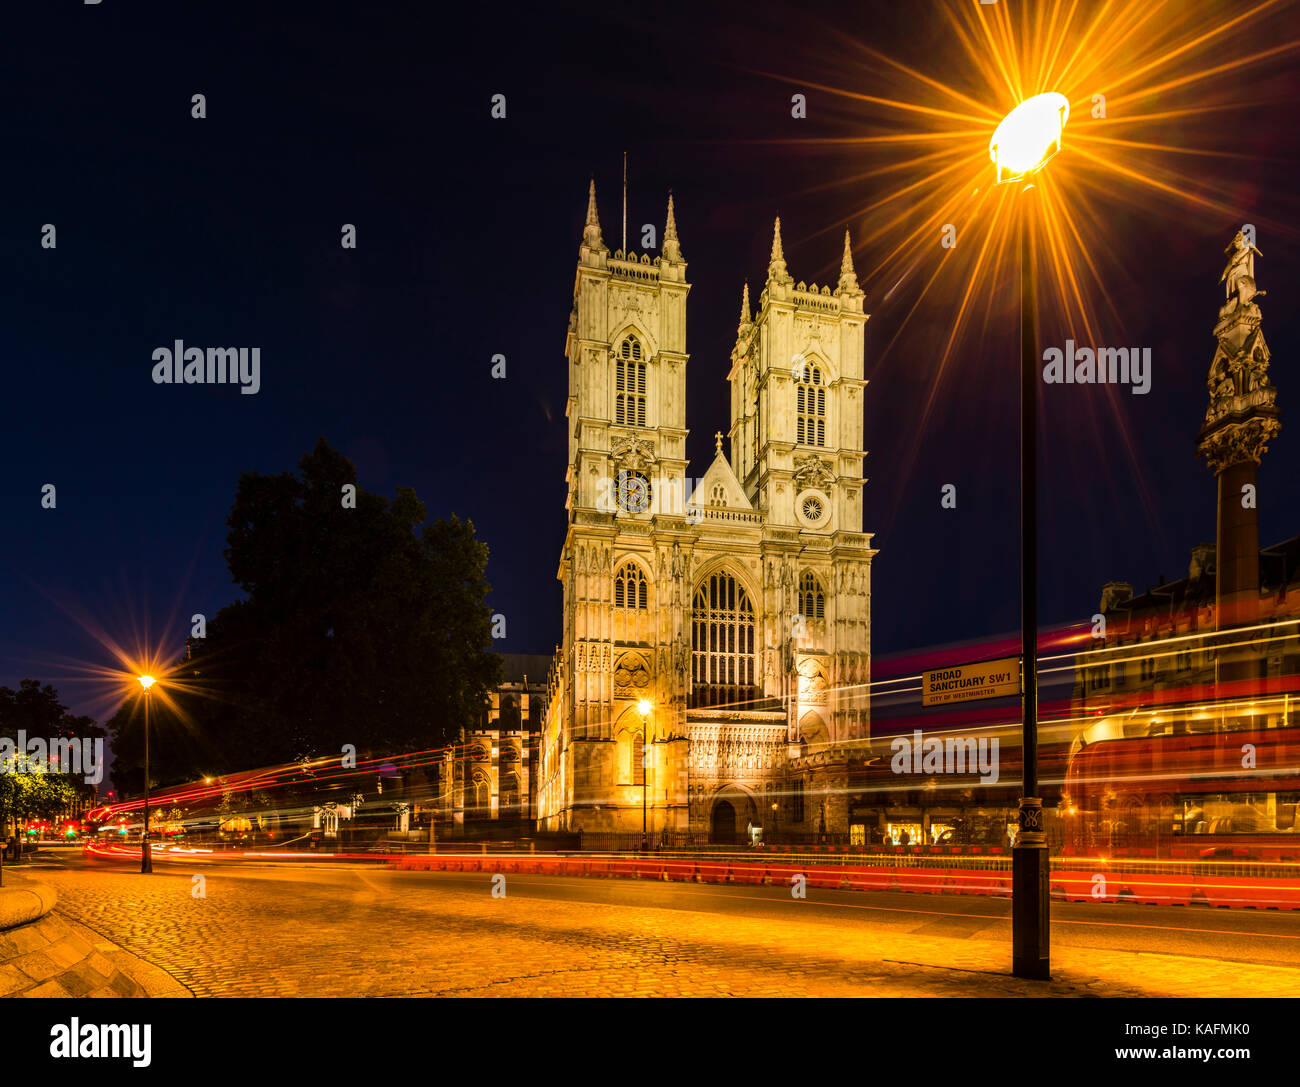 Red London buses in front of Westminster Abbey at night, London, UK - Stock Image